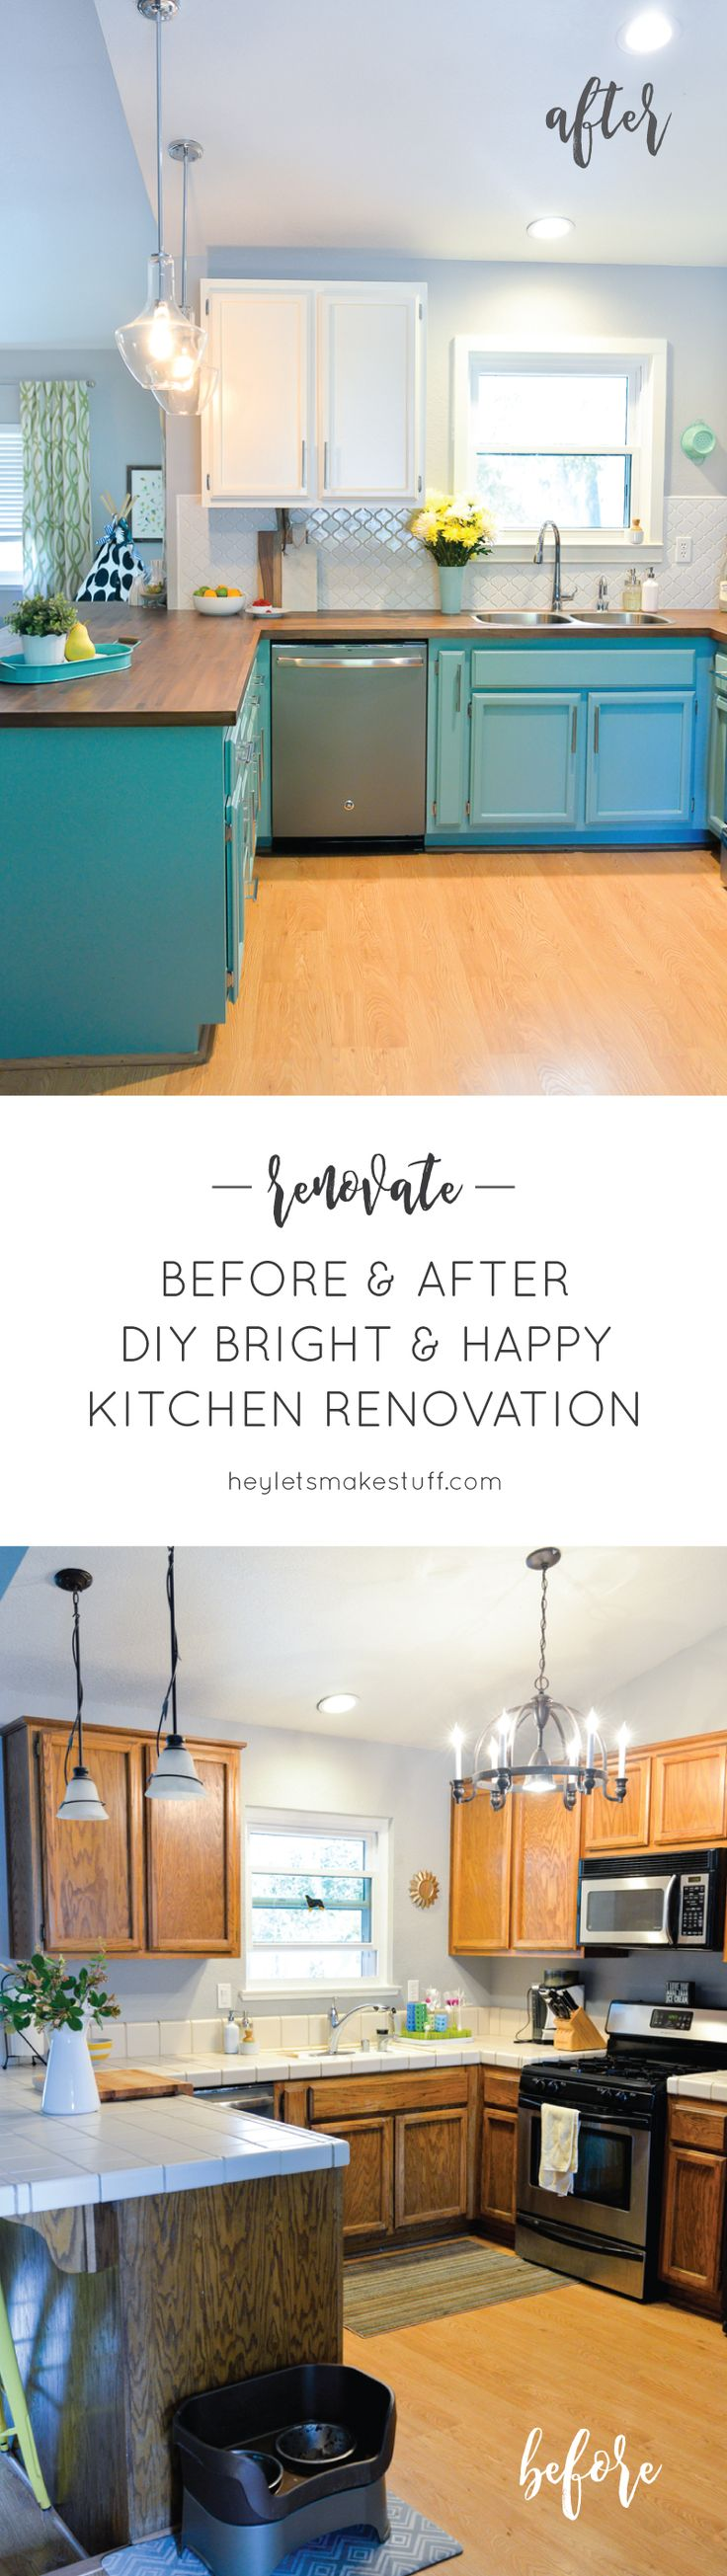 Bright and Happy DIY Kitchen Renovation on a Budget | Bright ...